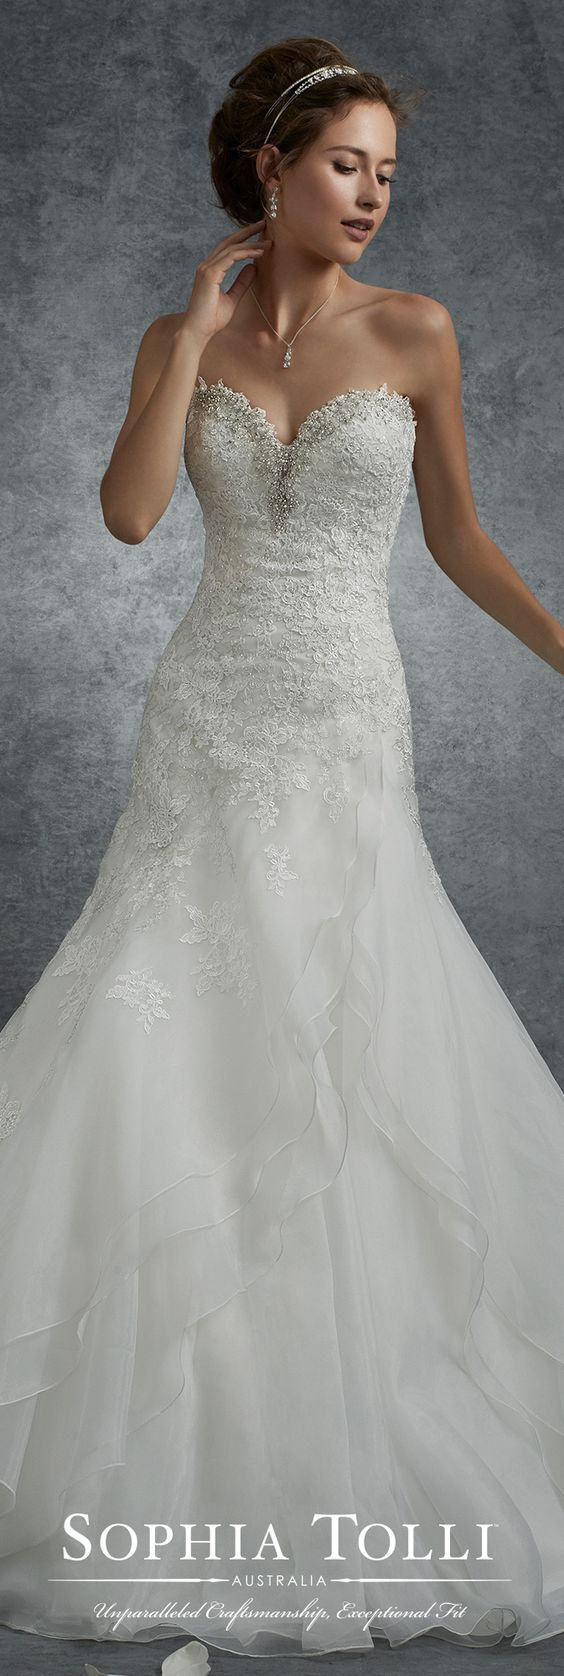 Fabulous Wedding Dress Inspiration Sophia Tolli